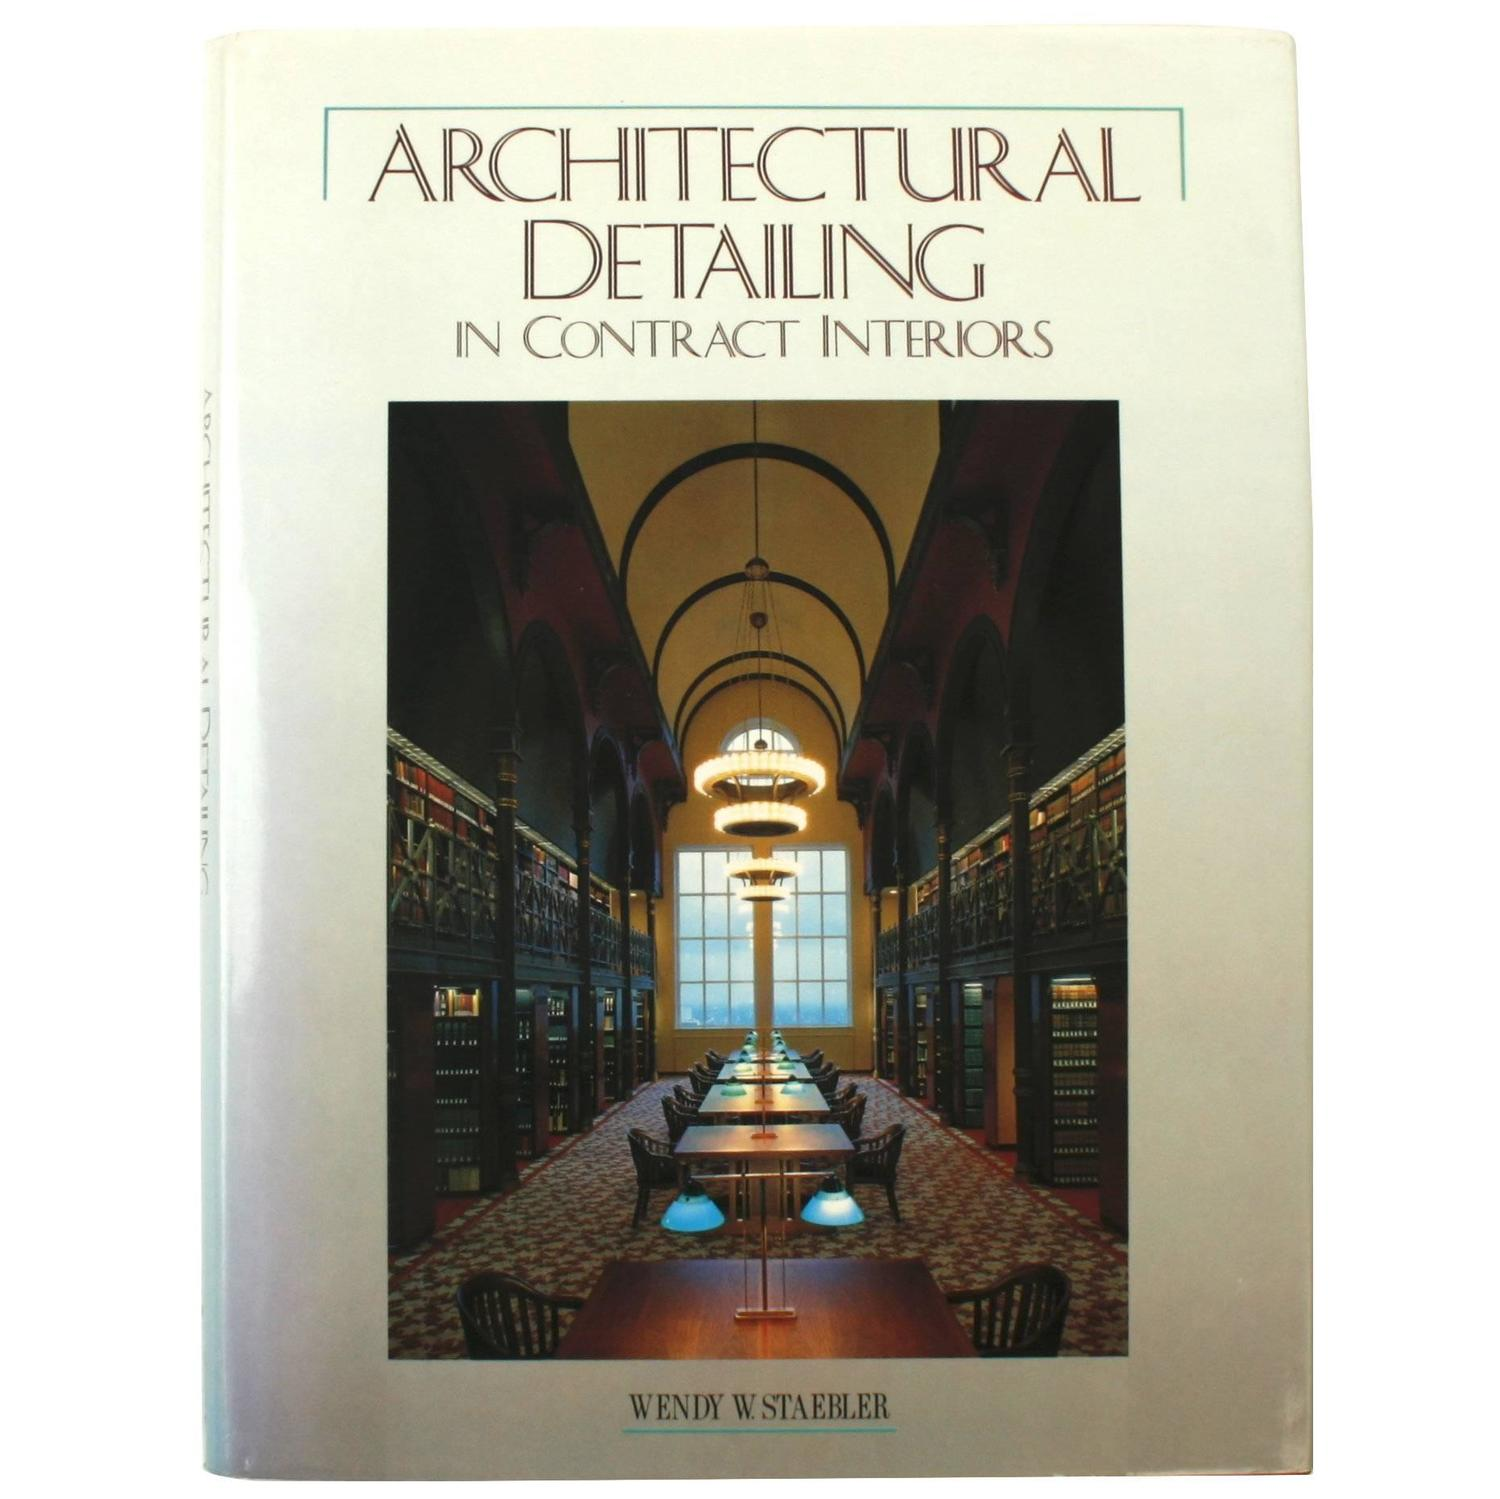 Attractive Architectural Detailing In Contract Interiors For Sale At 1stdibs